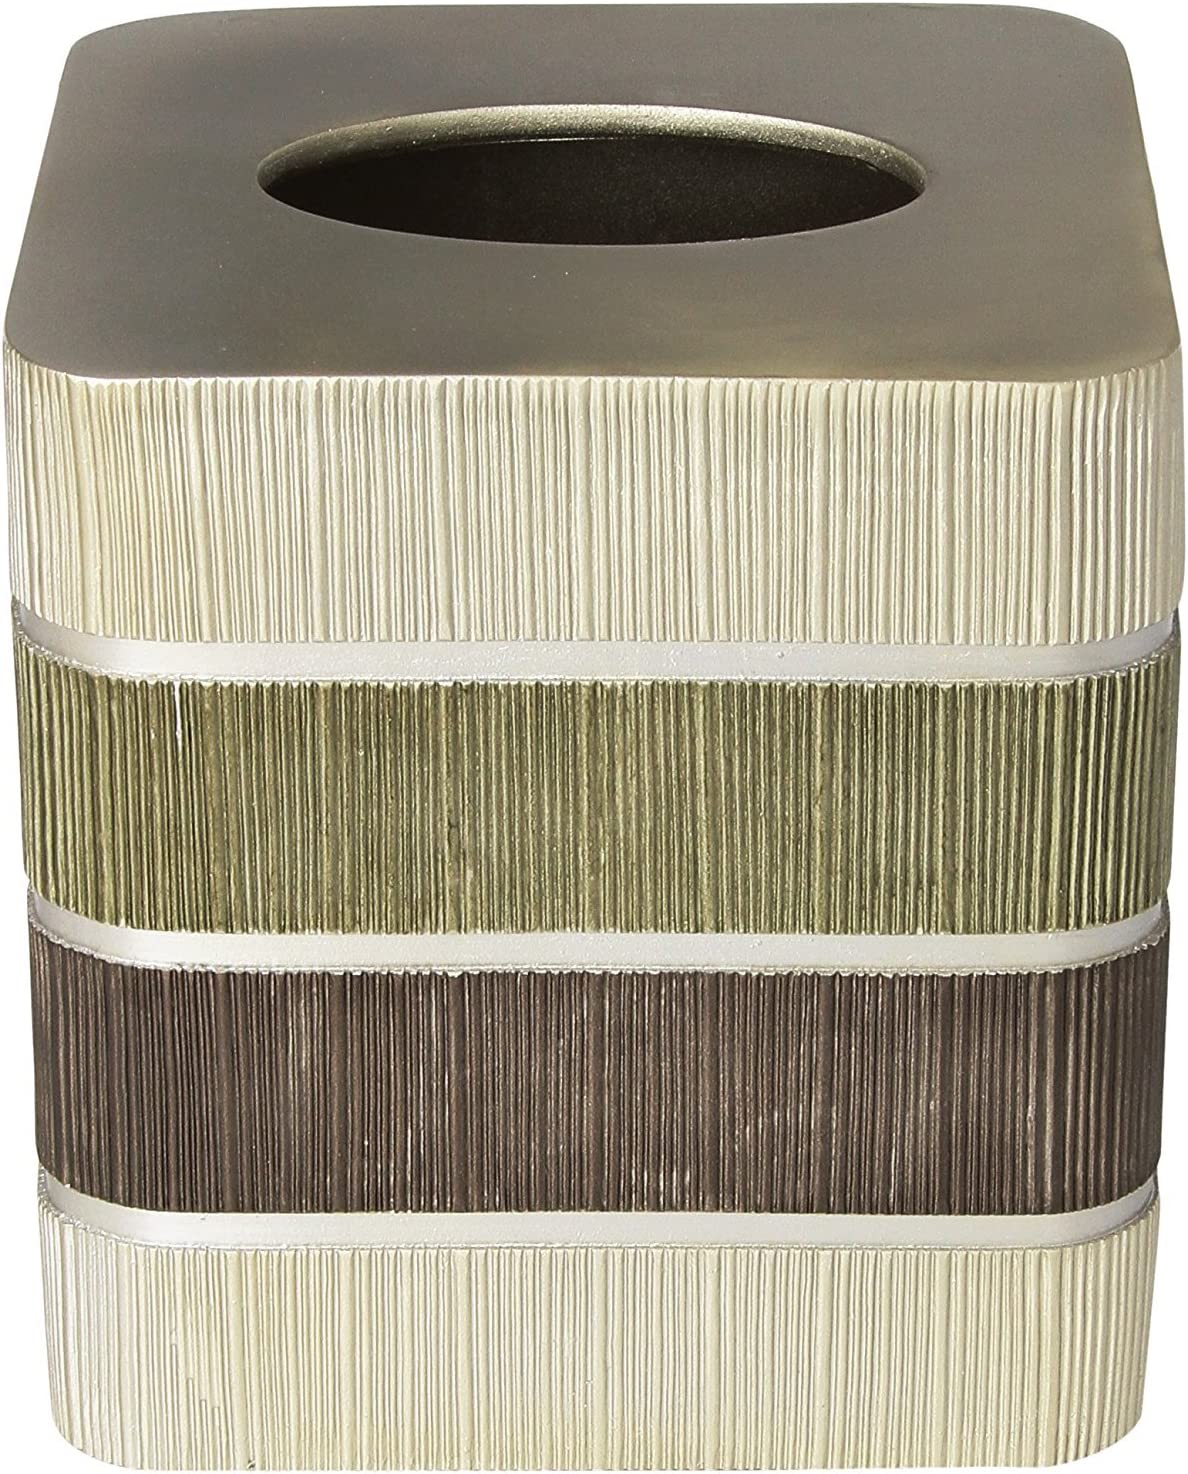 Popular Home The Modern Line 67% OFF of fixed price Basket Collection supreme Waste Sage